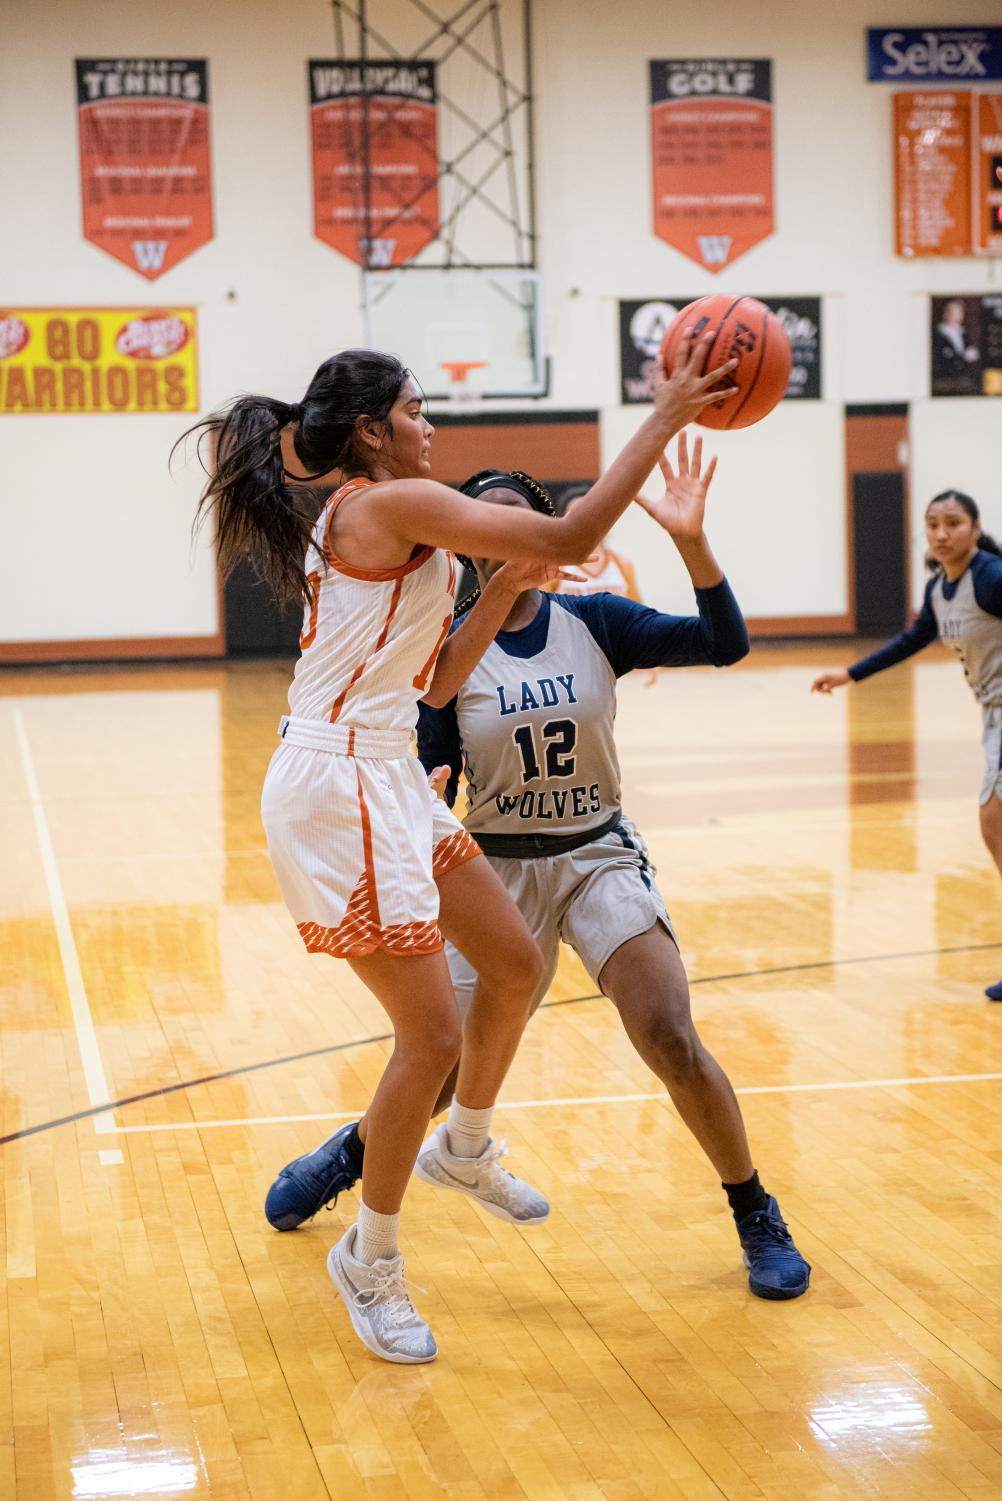 A+defensive+player+on+her+back%2C+Anisha+Chintala+%2721+passes+the+ball+to+her+teammate+which+led+to+another+point+for+the+Warriors.+During+the+second+quarter+the+Warriors+were+able+to+make+up+their+score+gap+scoring+a+stunning+17+points.